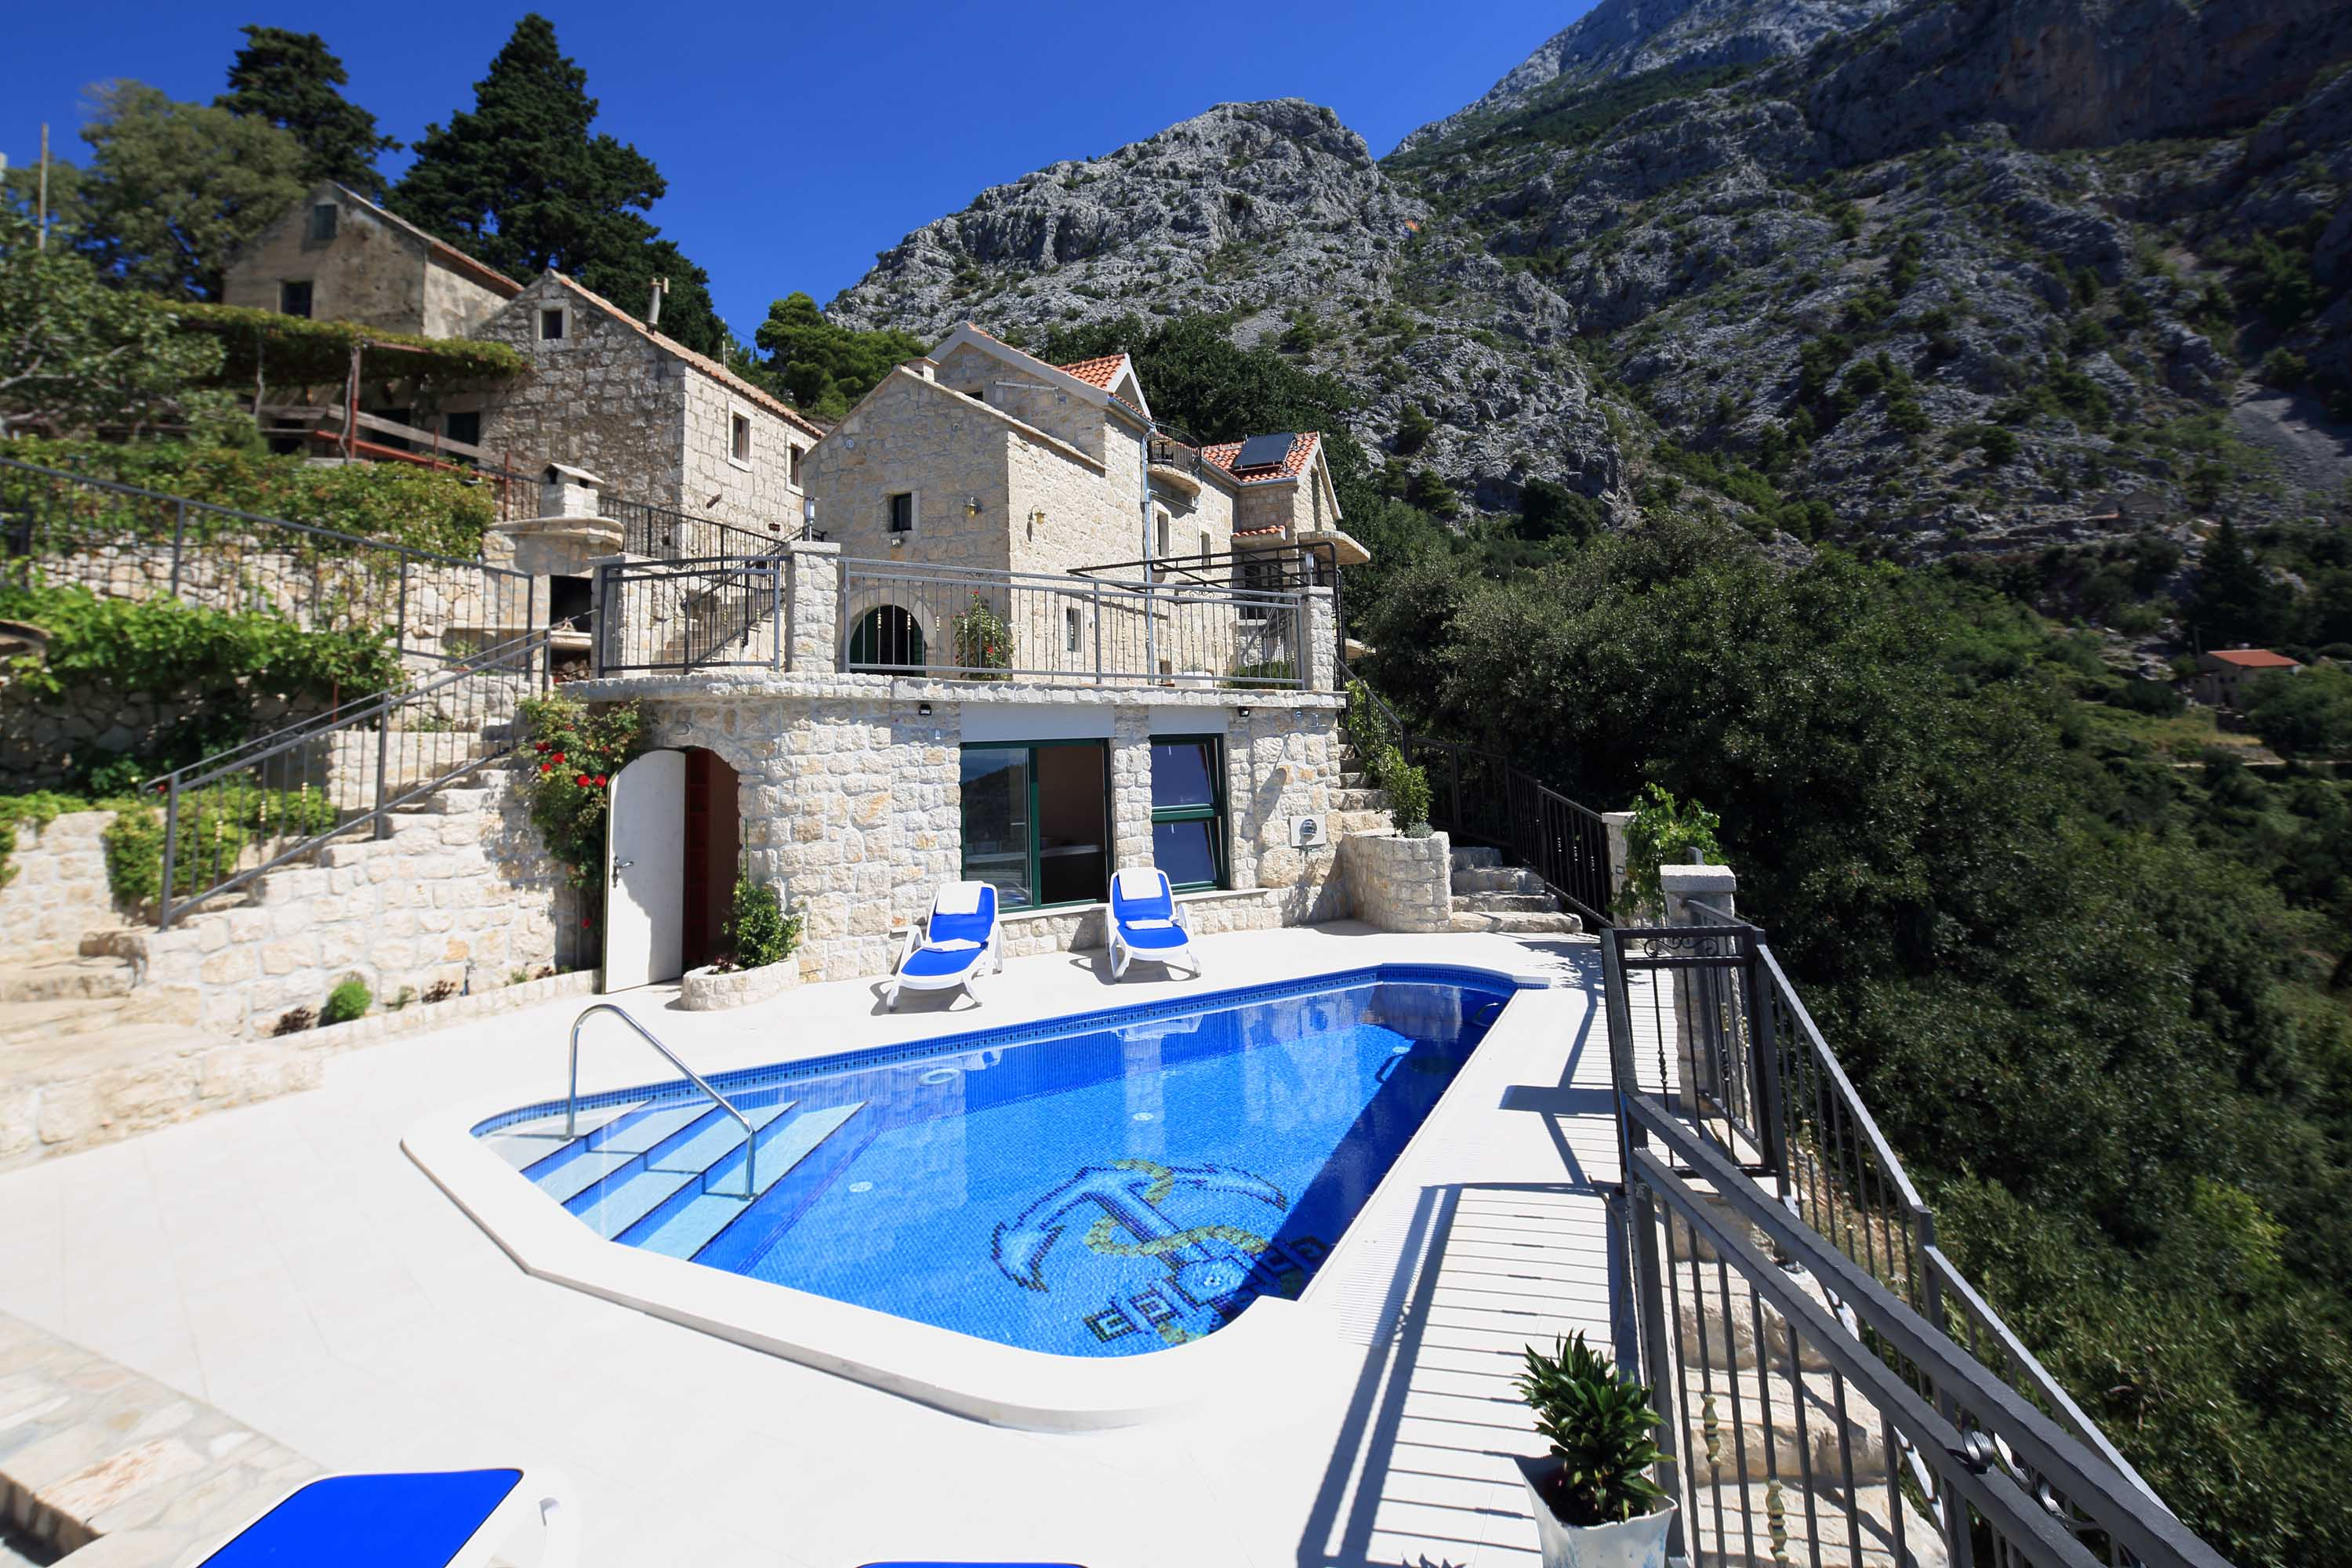 Holiday Home Dalmatian Stone with Pool